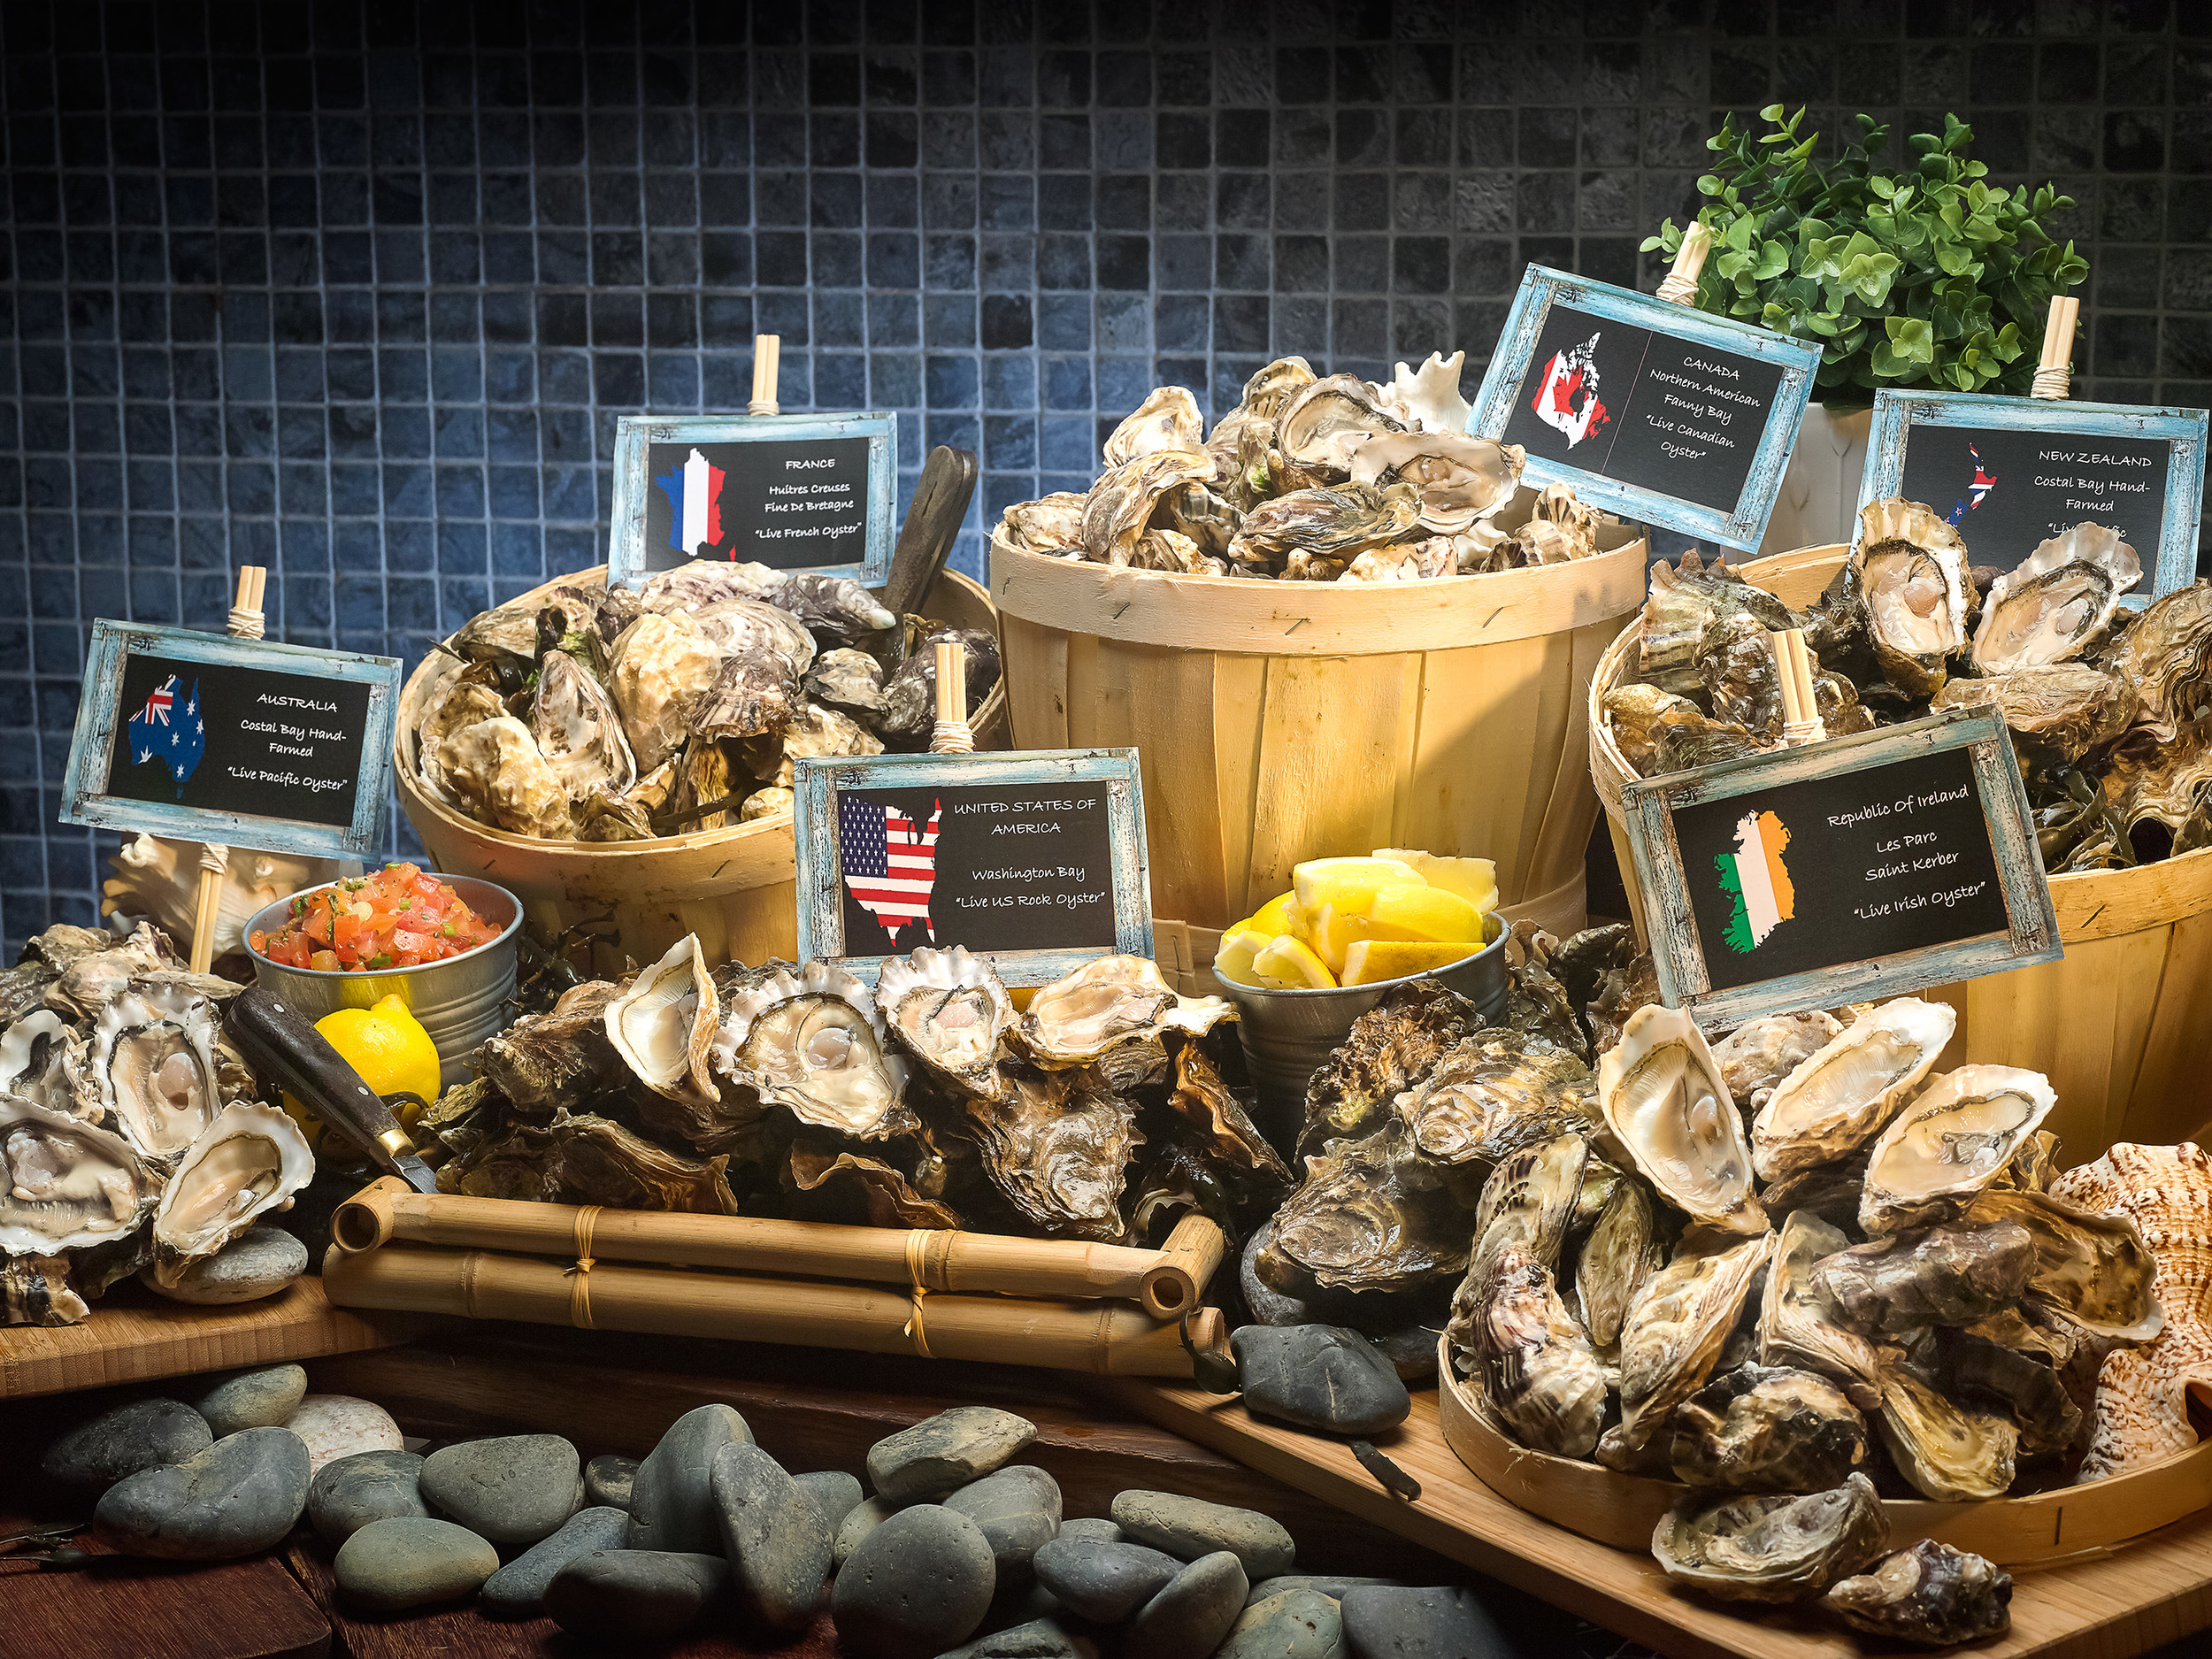 Oyster Occasions at Pan Pacific Orchard